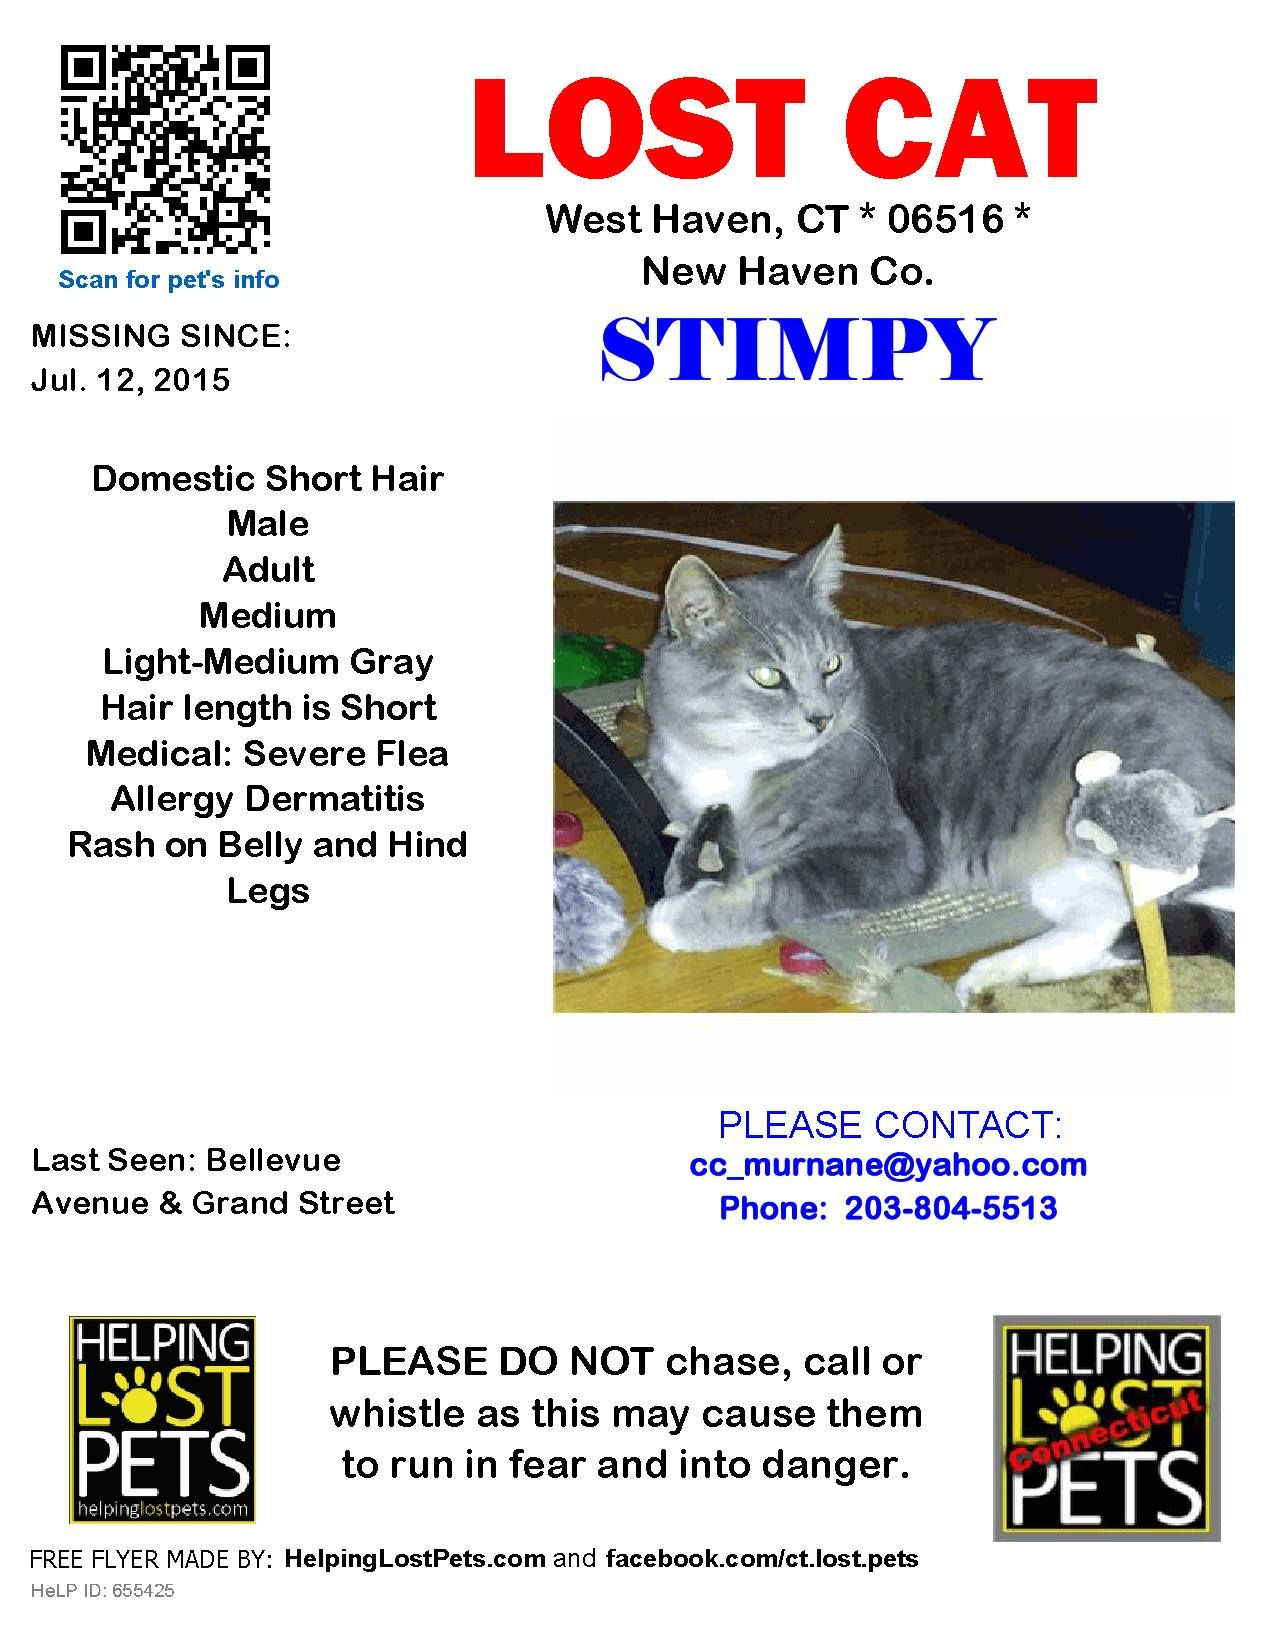 Optionssharesendlike Photos Of Ct Lost Pets Catherine Murnane Ct Lost Pets July 24 My 7 Year Old Male Cat Stimpy Ran Out My Back Lost Cats Ct Losin